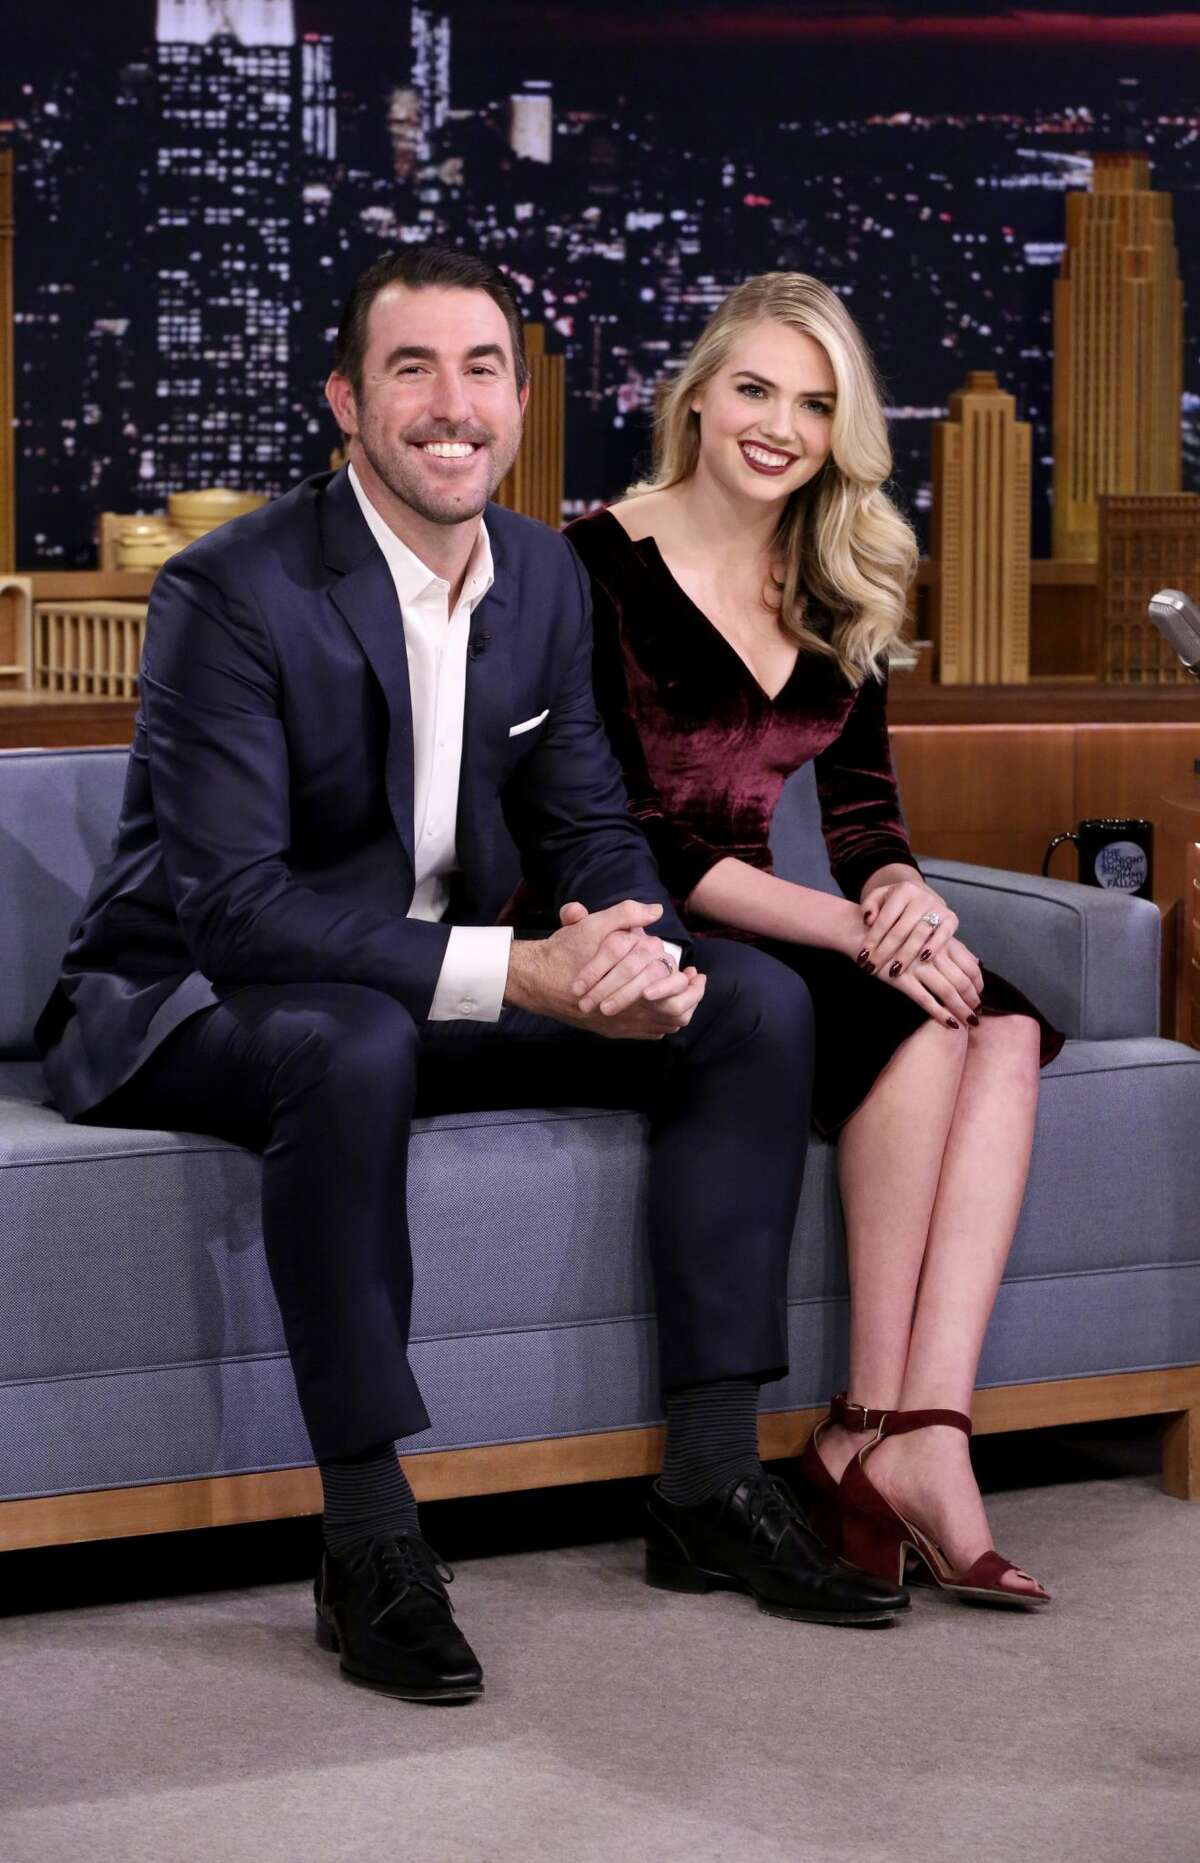 THE TONIGHT SHOW STARRING JIMMY FALLON -- Episode 0772 -- Pictured: (l-r) Athlete Justin Verlander, Model/Actress Kate Upton during an interview on November 17, 2017 -- (Photo by: Andrew Lipovsky/NBC/NBCU Photo Bank via Getty Images)